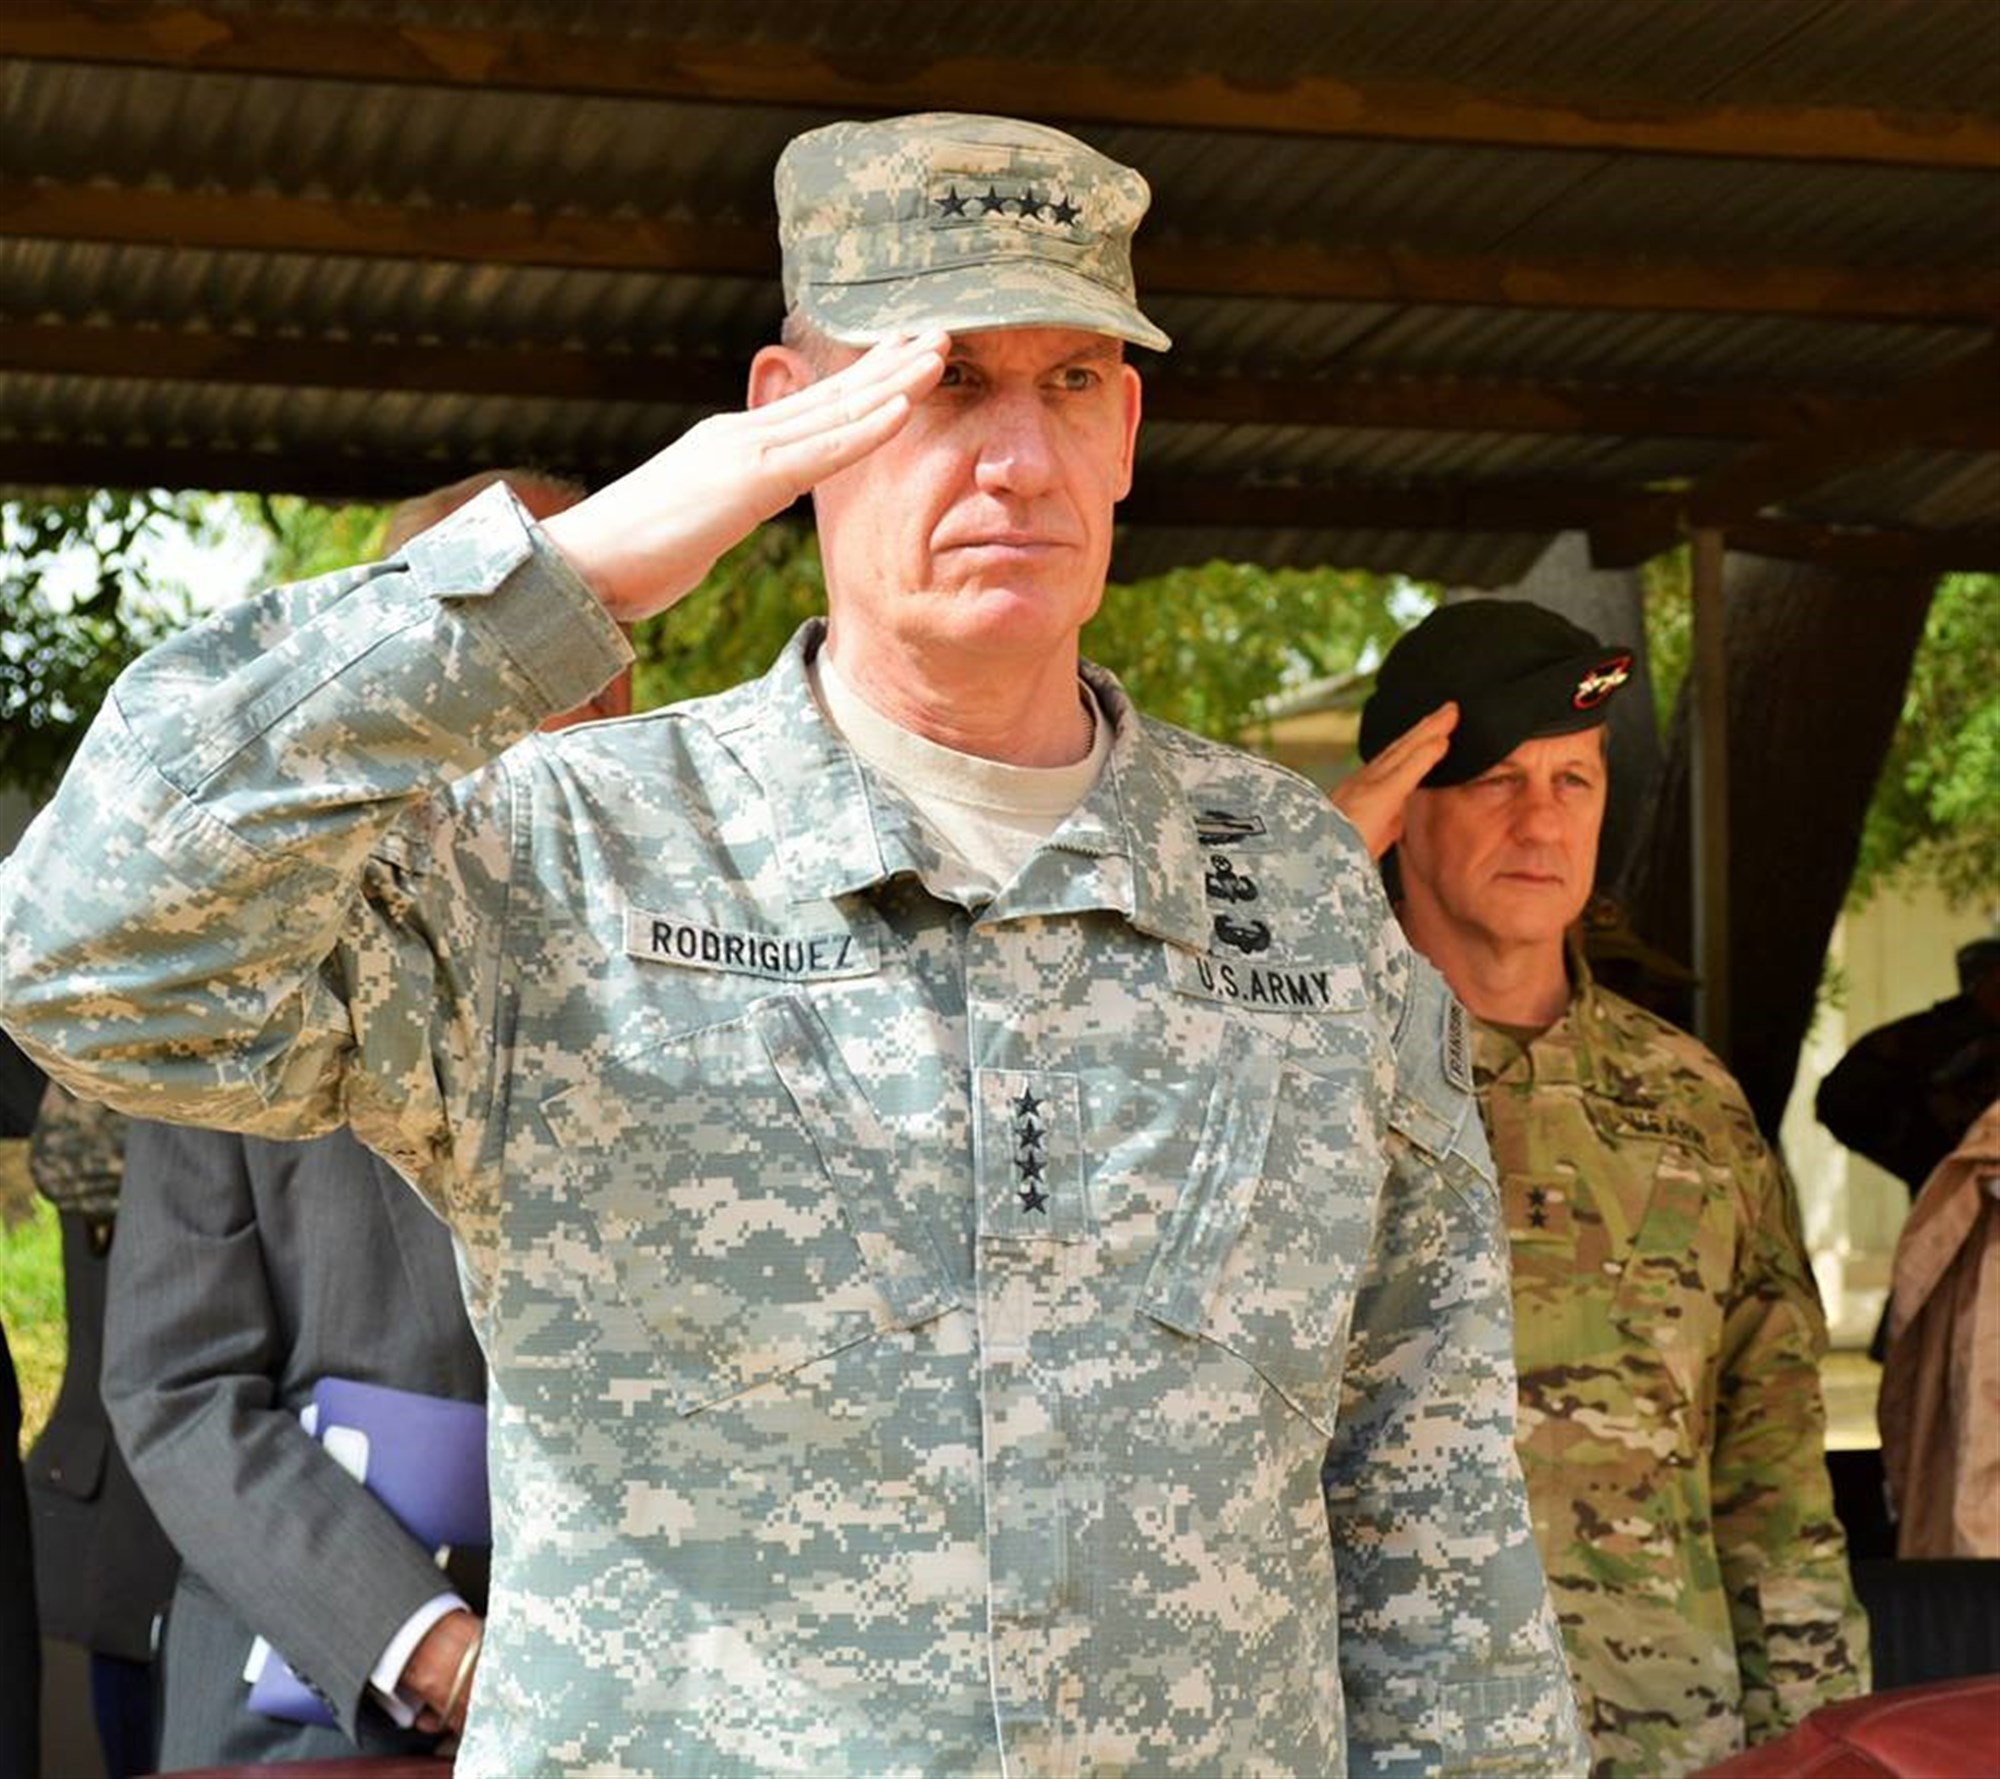 U.S. Army Gen. David Rodriguez at the closing ceremony for Flintlock, Mar. 9, 2015, N'Djamena, Chad. (Photo by U.S. Army Sgt. 1st Class Jessica Espinosa, U.S. Special Operations Command Africa/RELEASED)